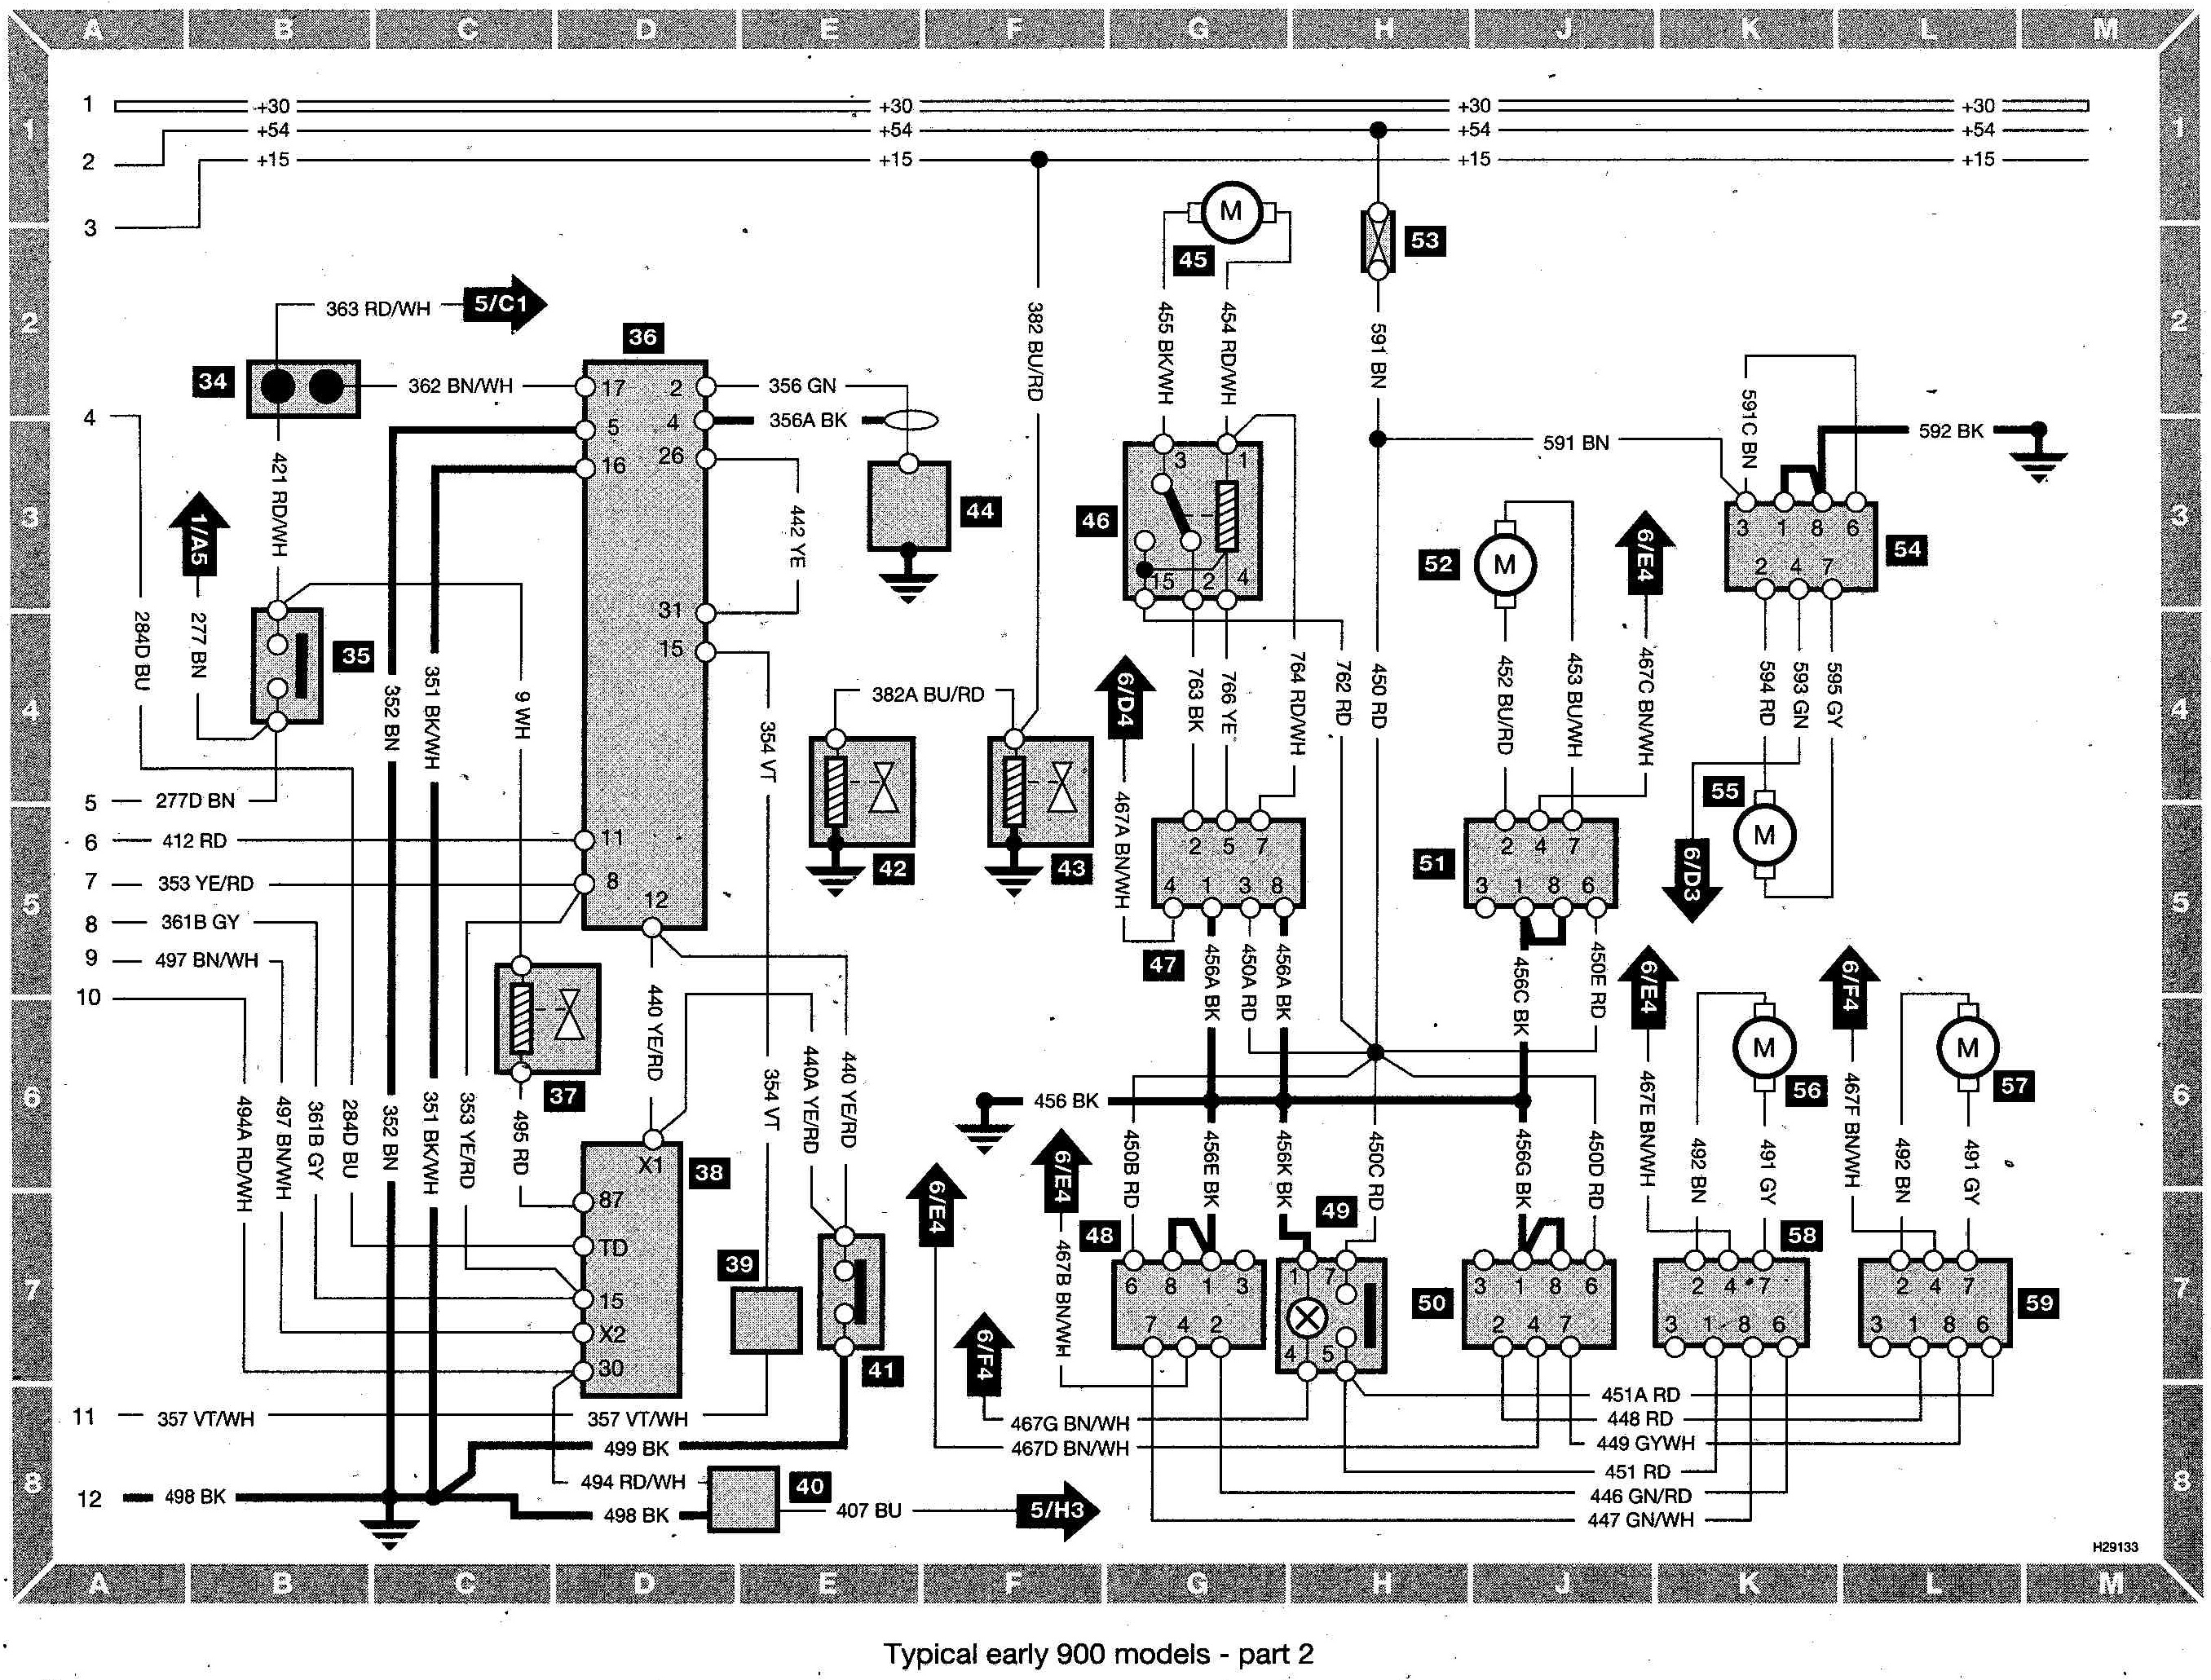 Saab 900 Wiring diagram (early models) part 2?resized665%2C505 saab wiring diagrams efcaviation com saab 9-3 wiring diagram pdf at bayanpartner.co